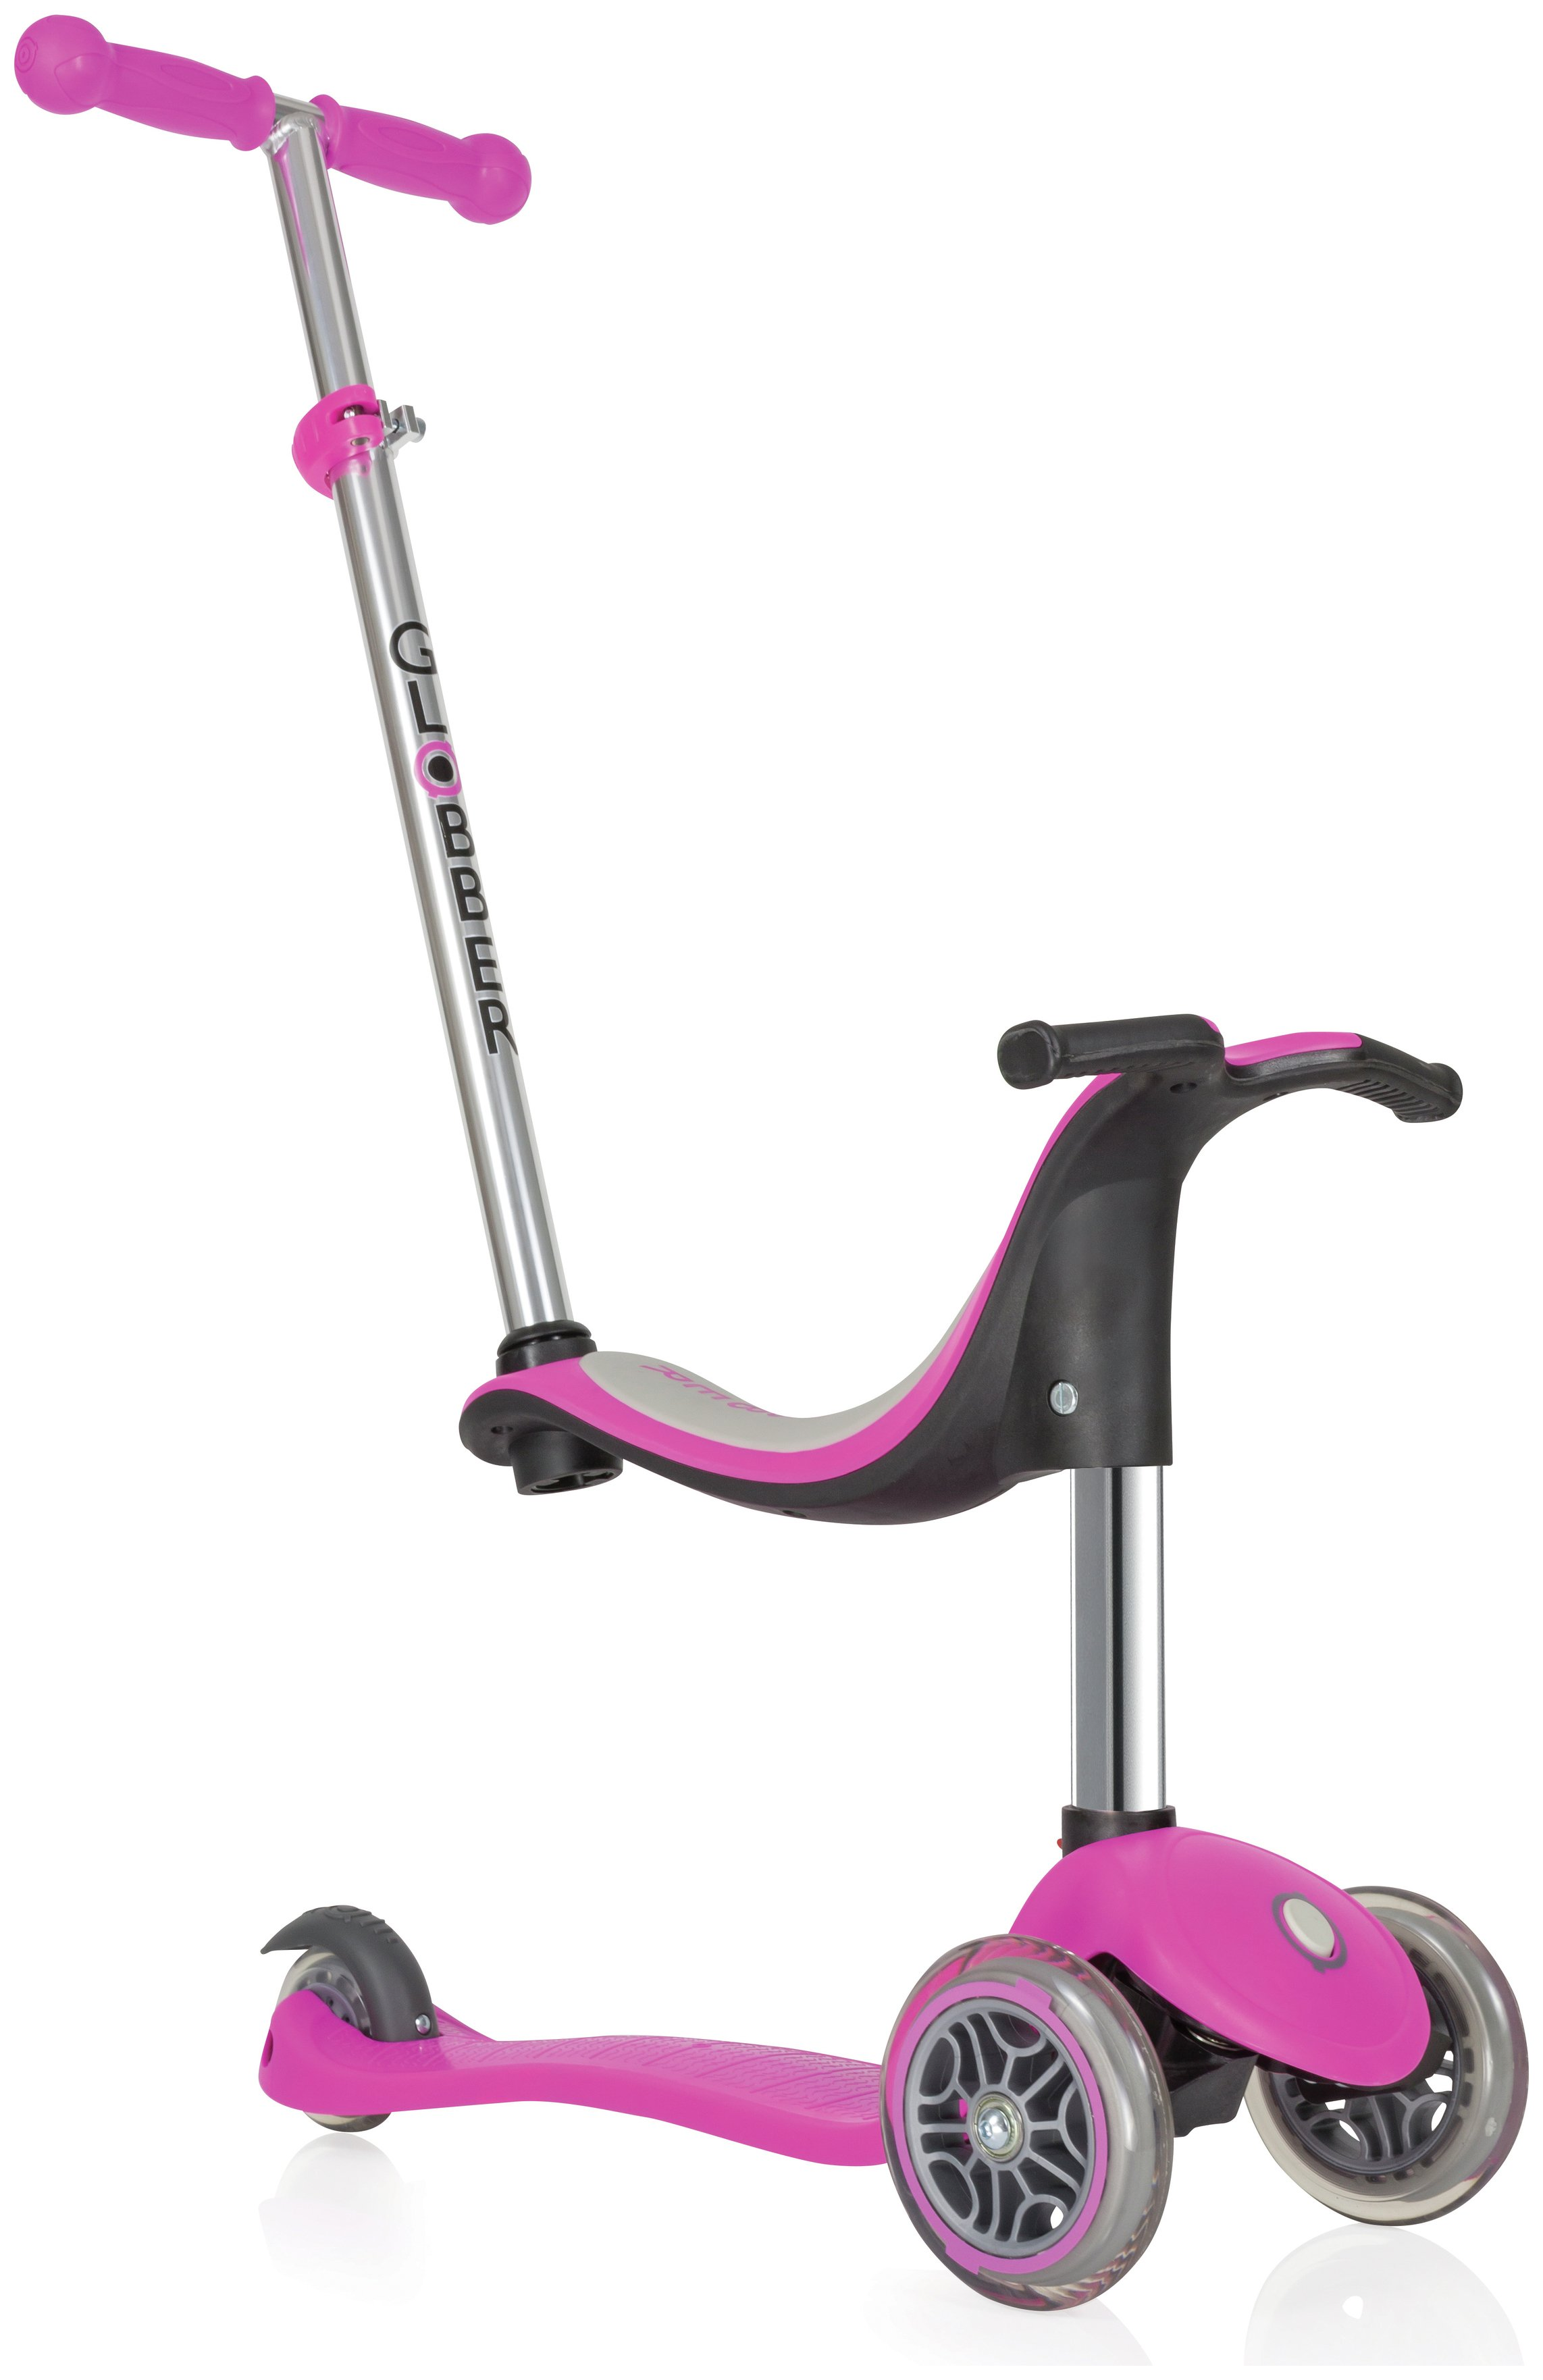 Globber Evo 4-in-1 3 Wheel Scooter - Deep Pink